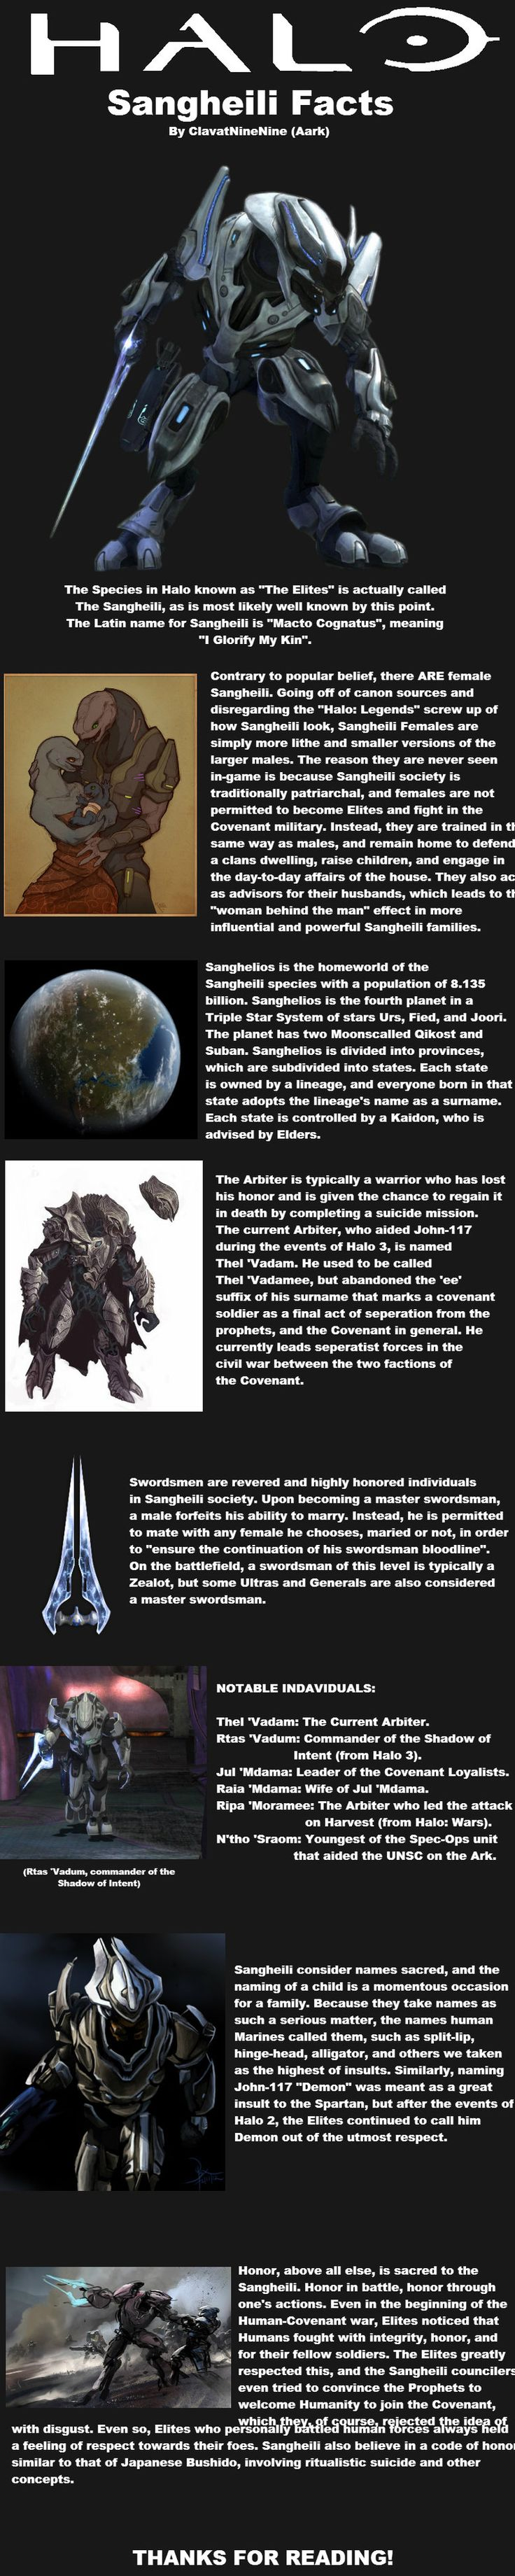 HALO: Sangheili Facts  // funny pictures - funny photos - funny images - funny pics - funny quotes - #lol #humor #funnypictures